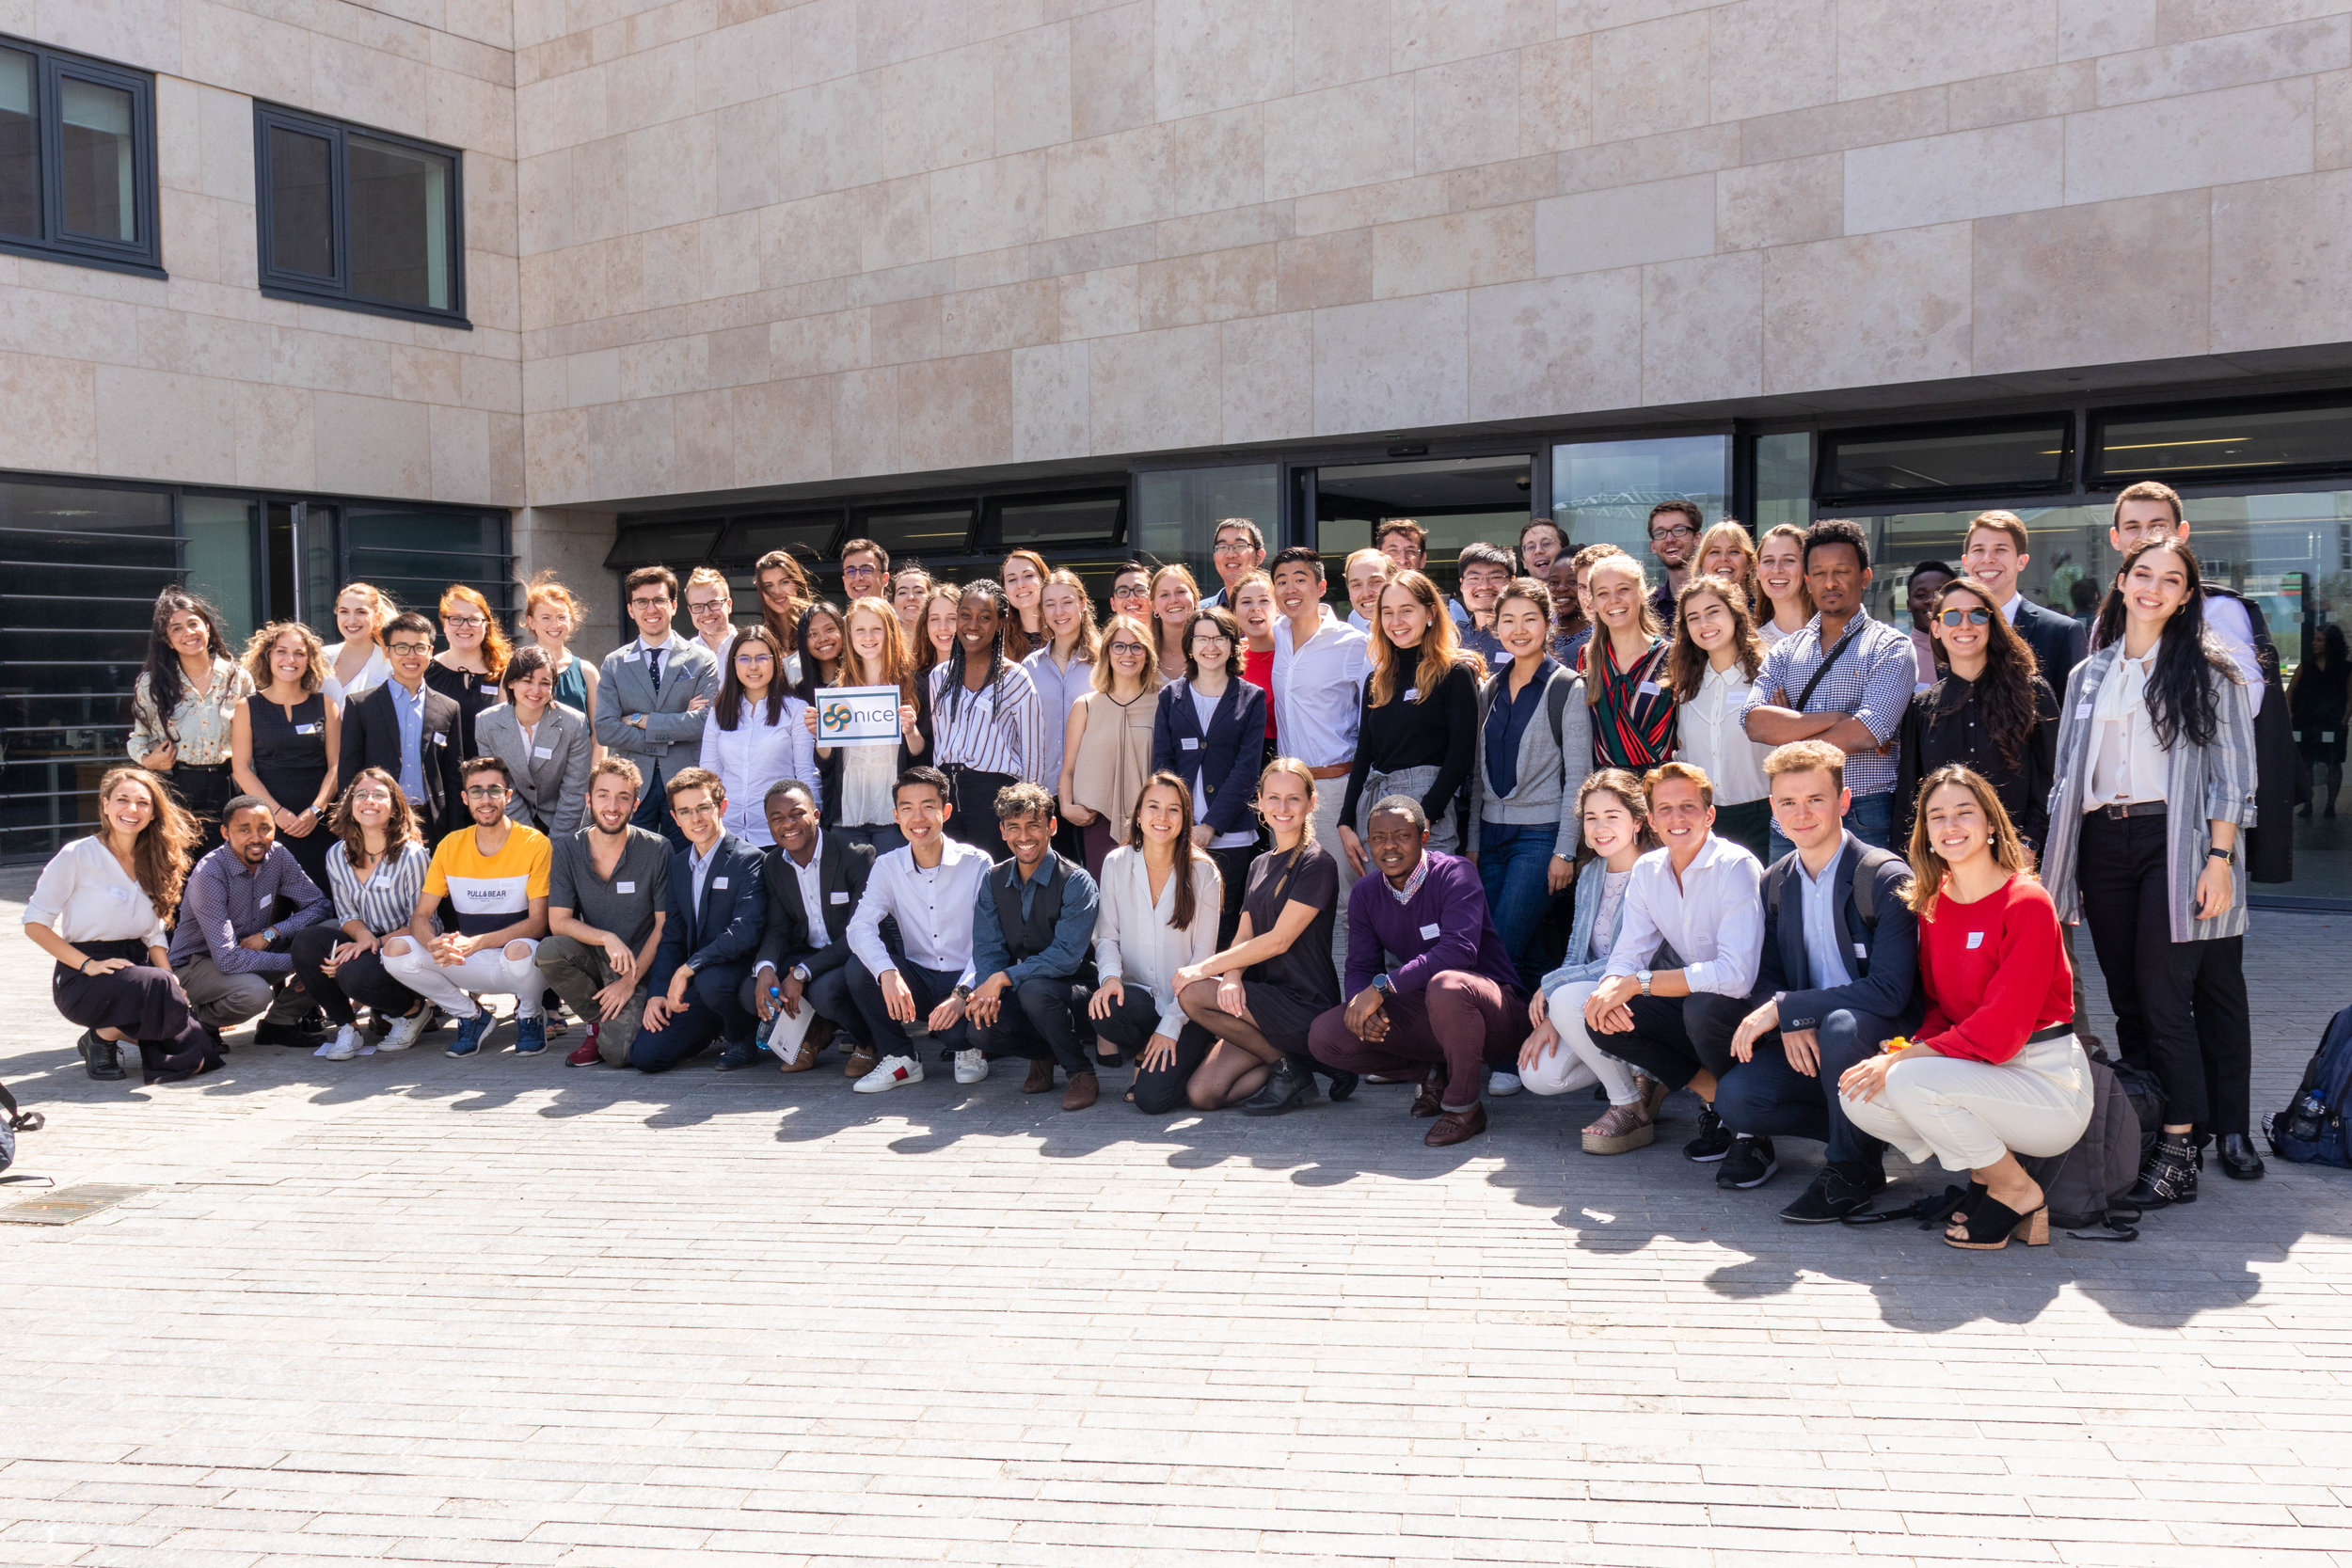 Attendees to the Dublin NICE Summer School 2019